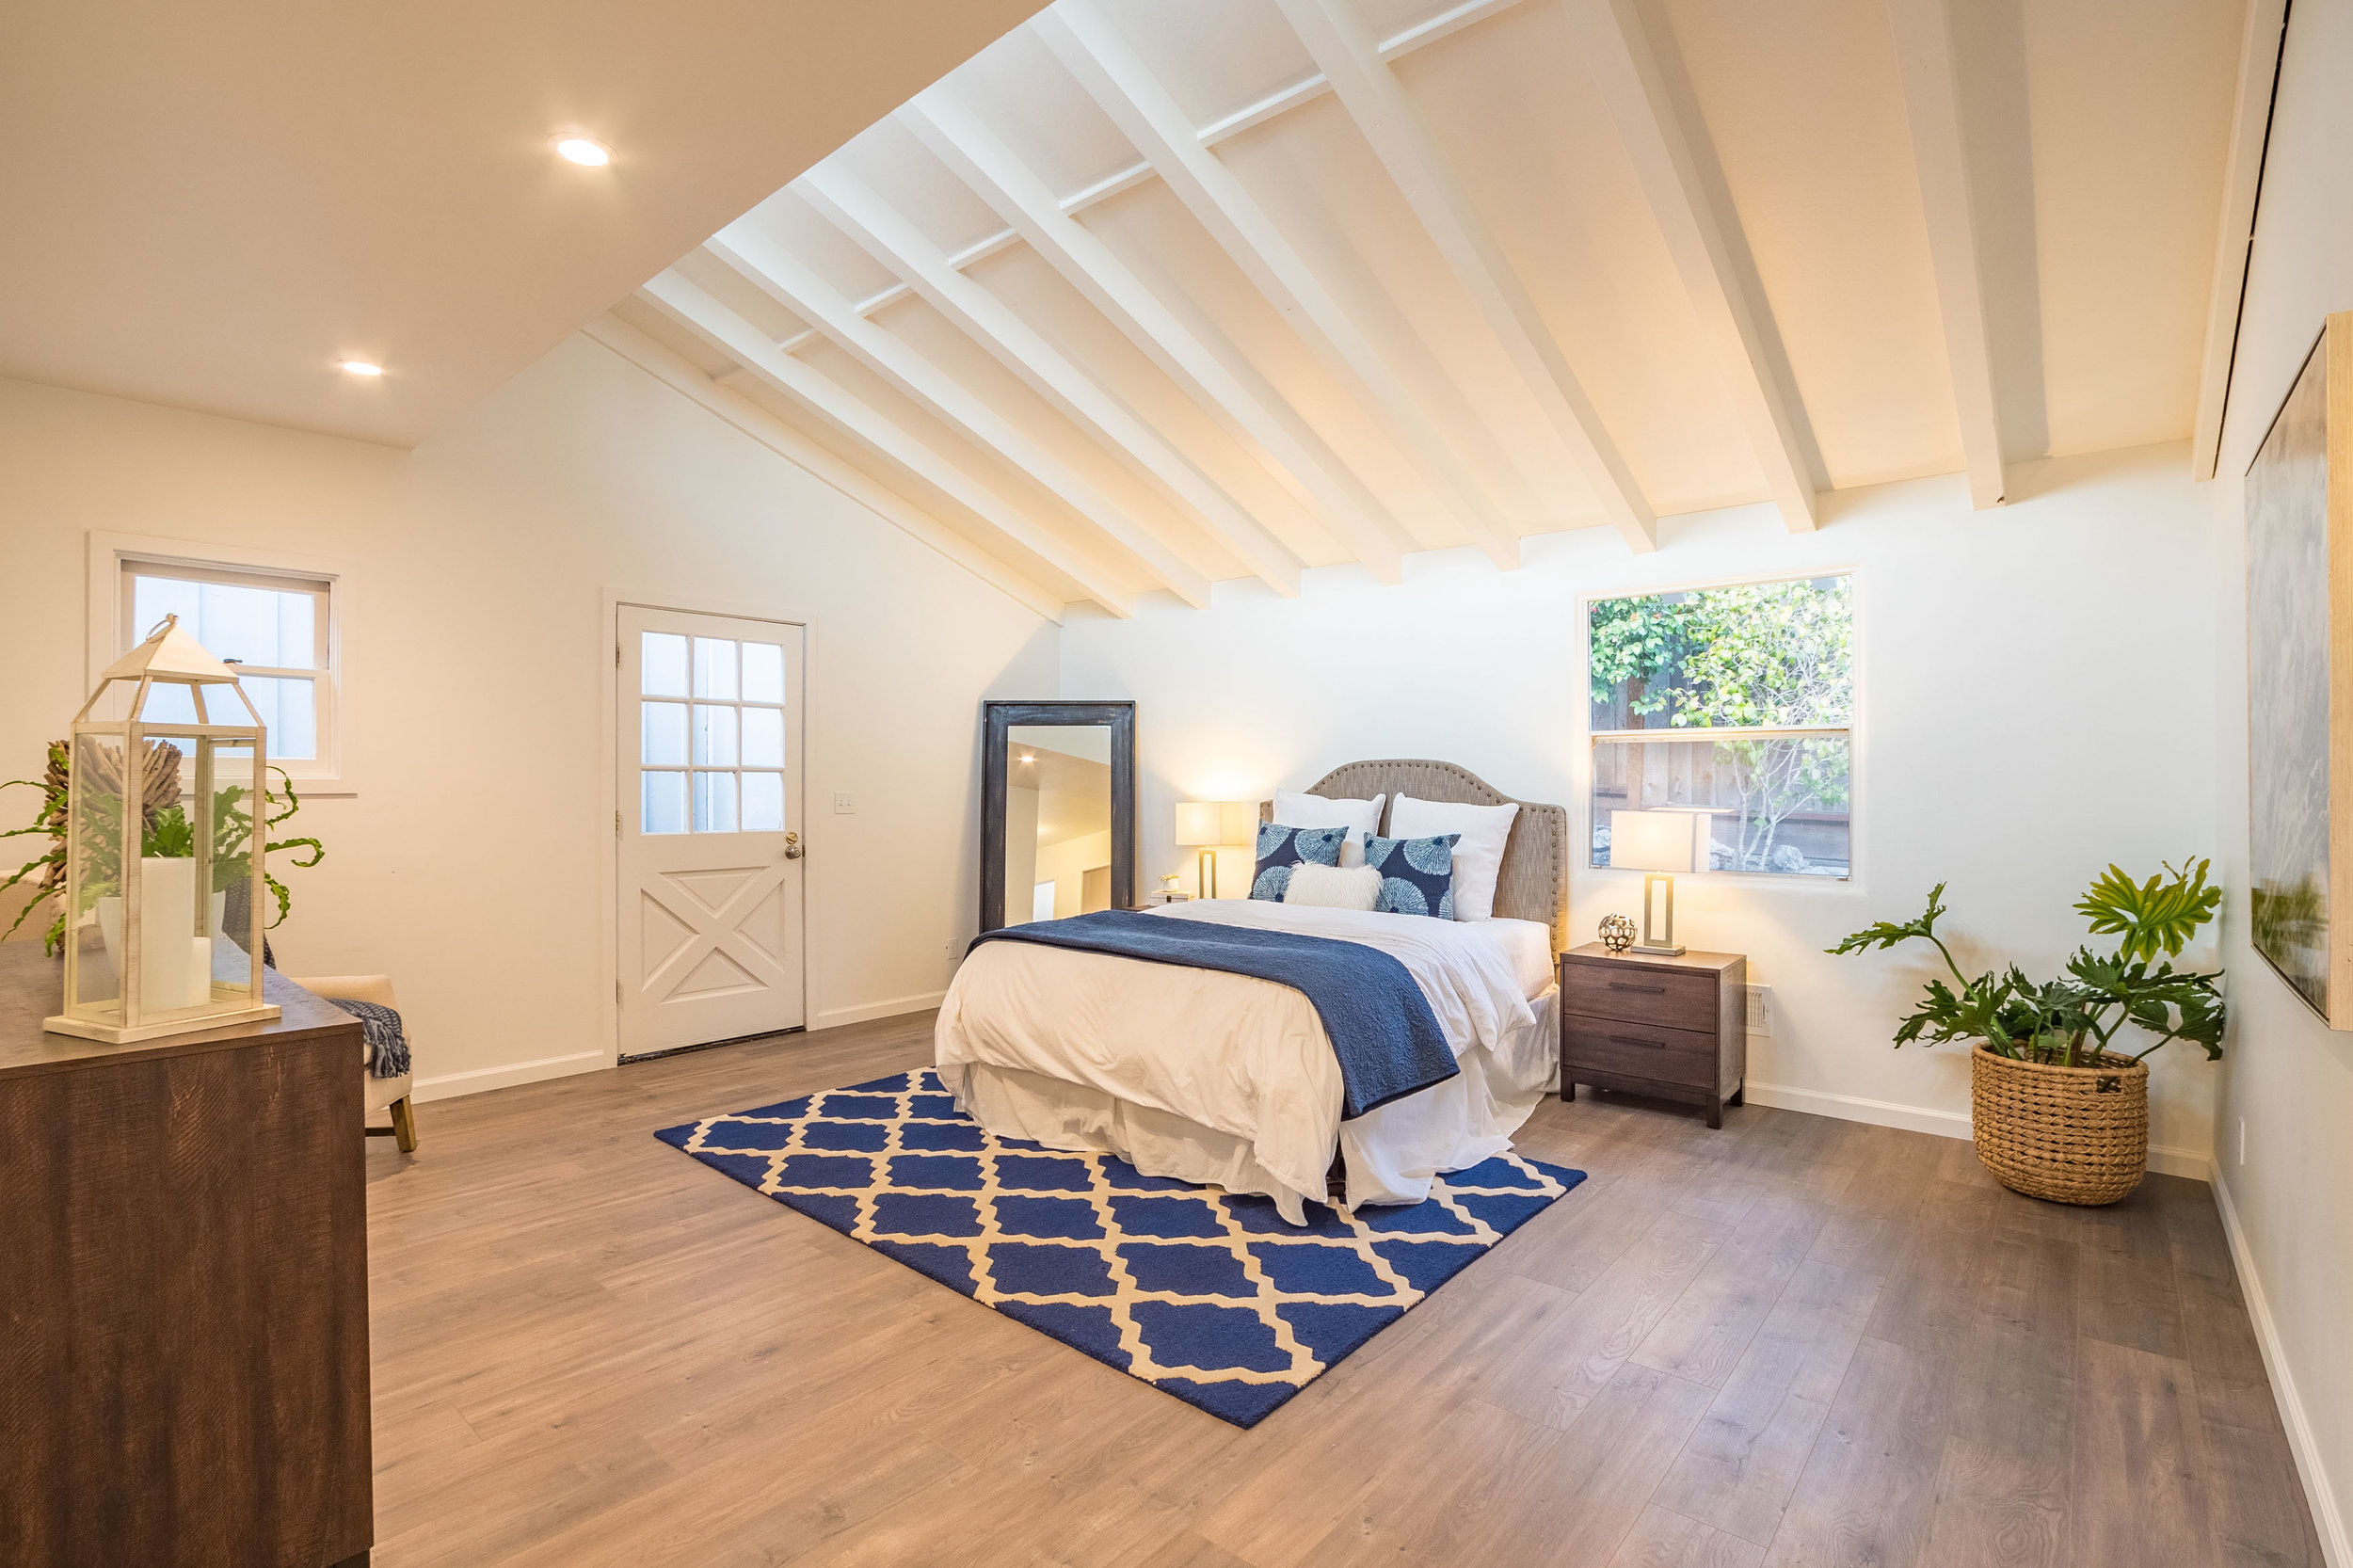 Master Bedroom with Vaulted Ceilings